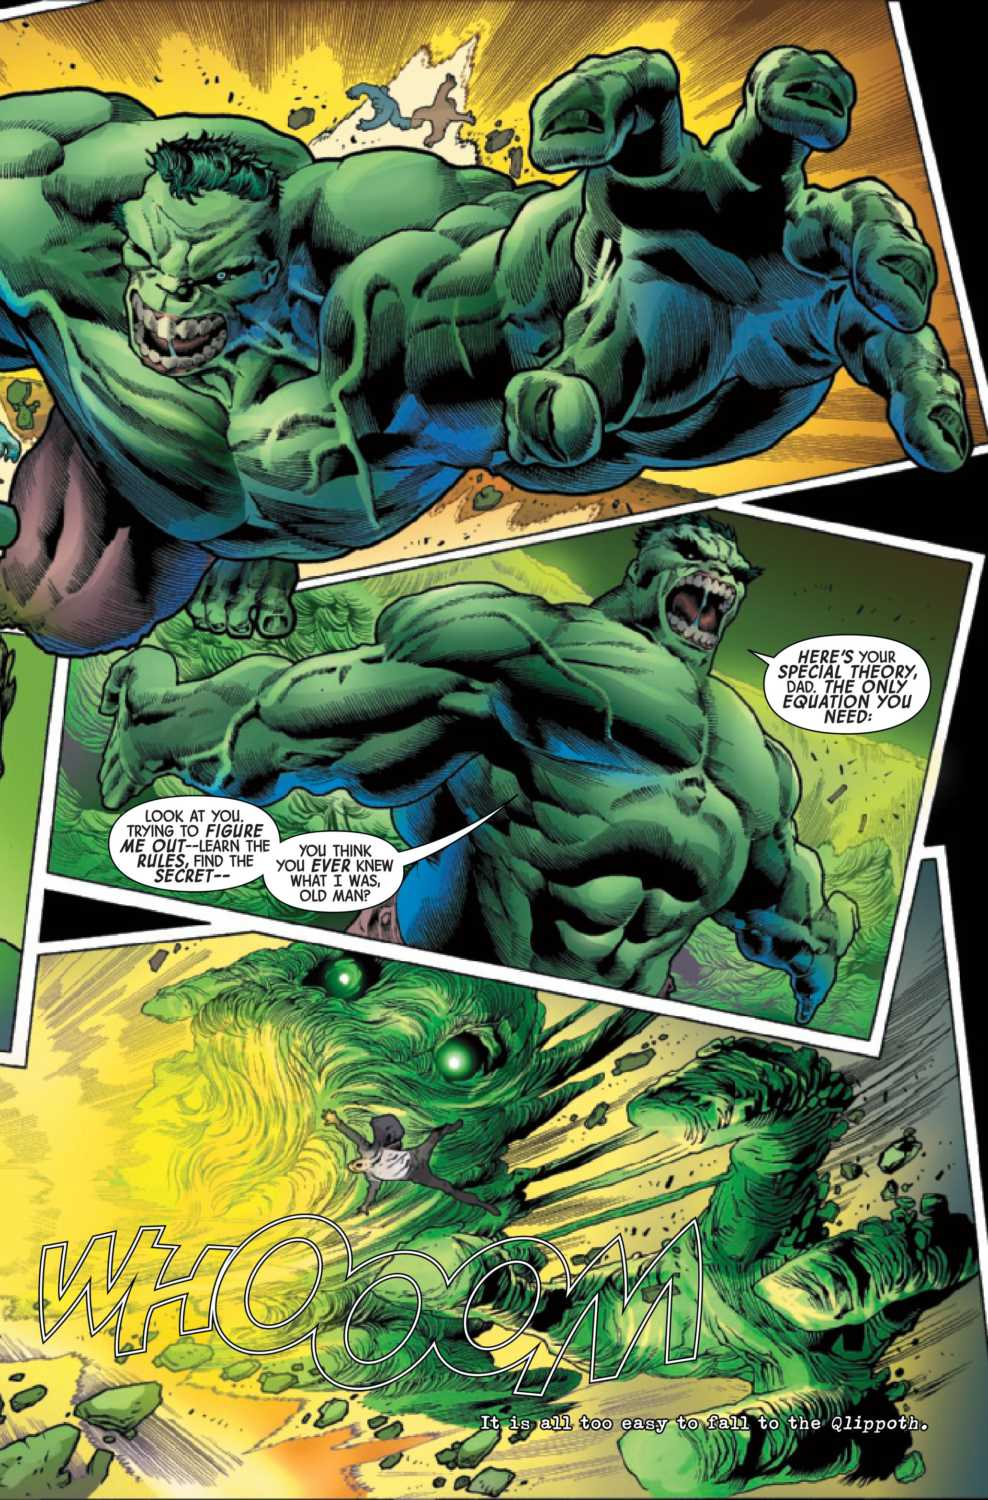 Hulk fights Gamma monster and Banners father